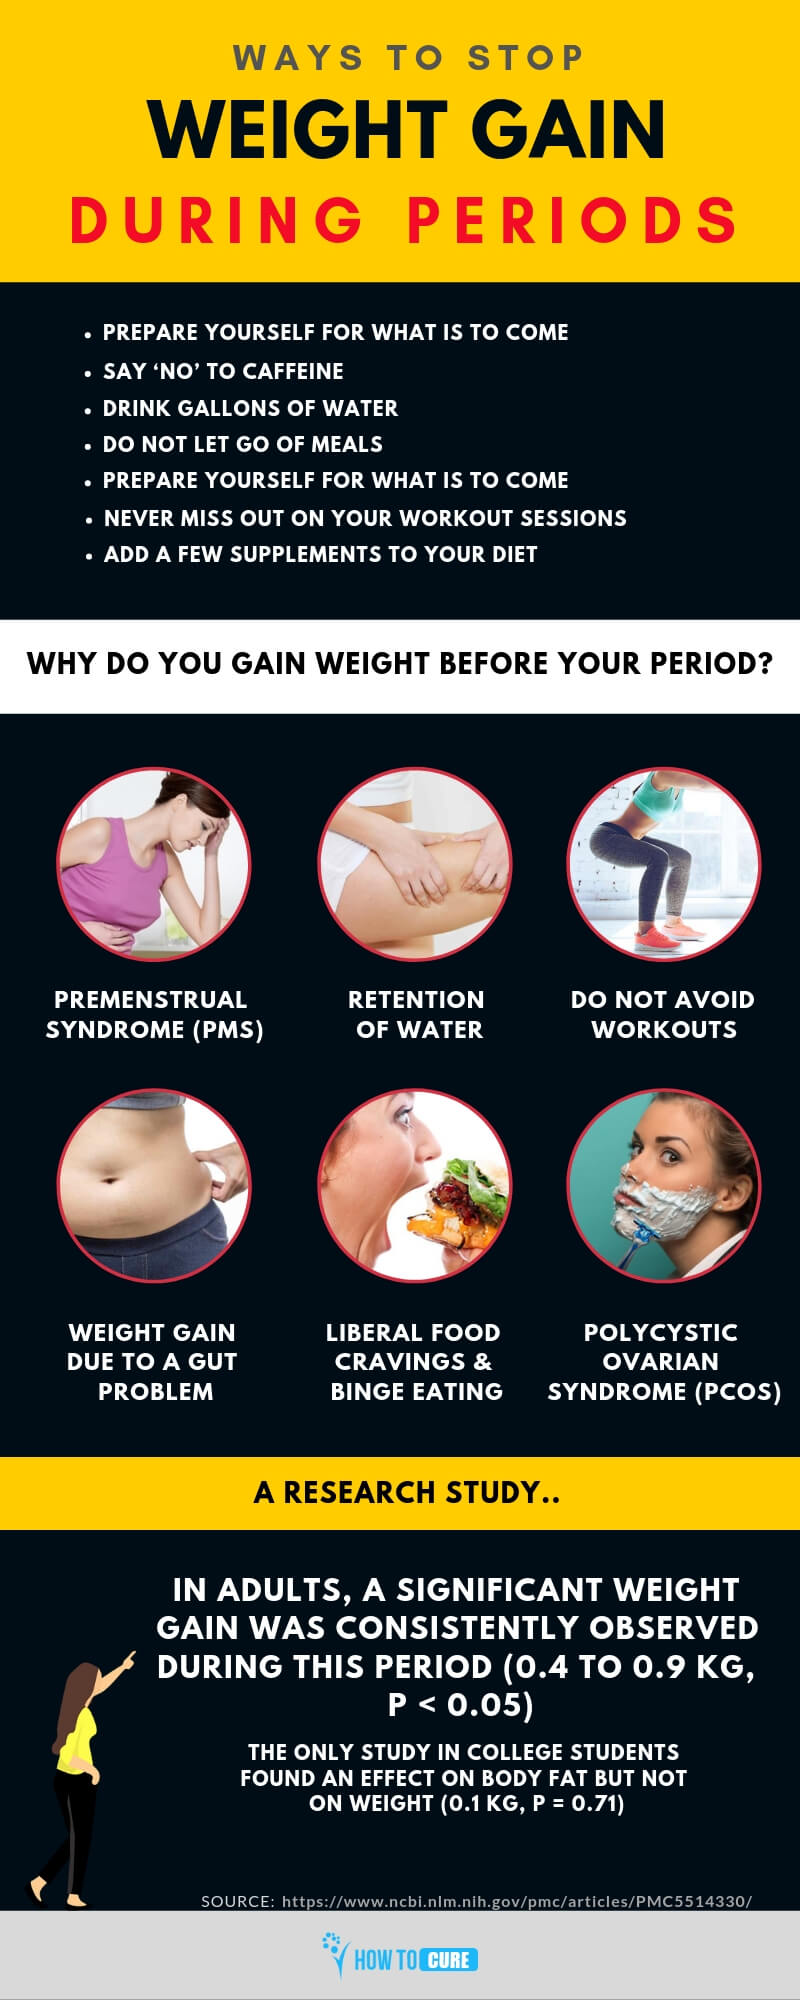 weight gain during periods - infographic